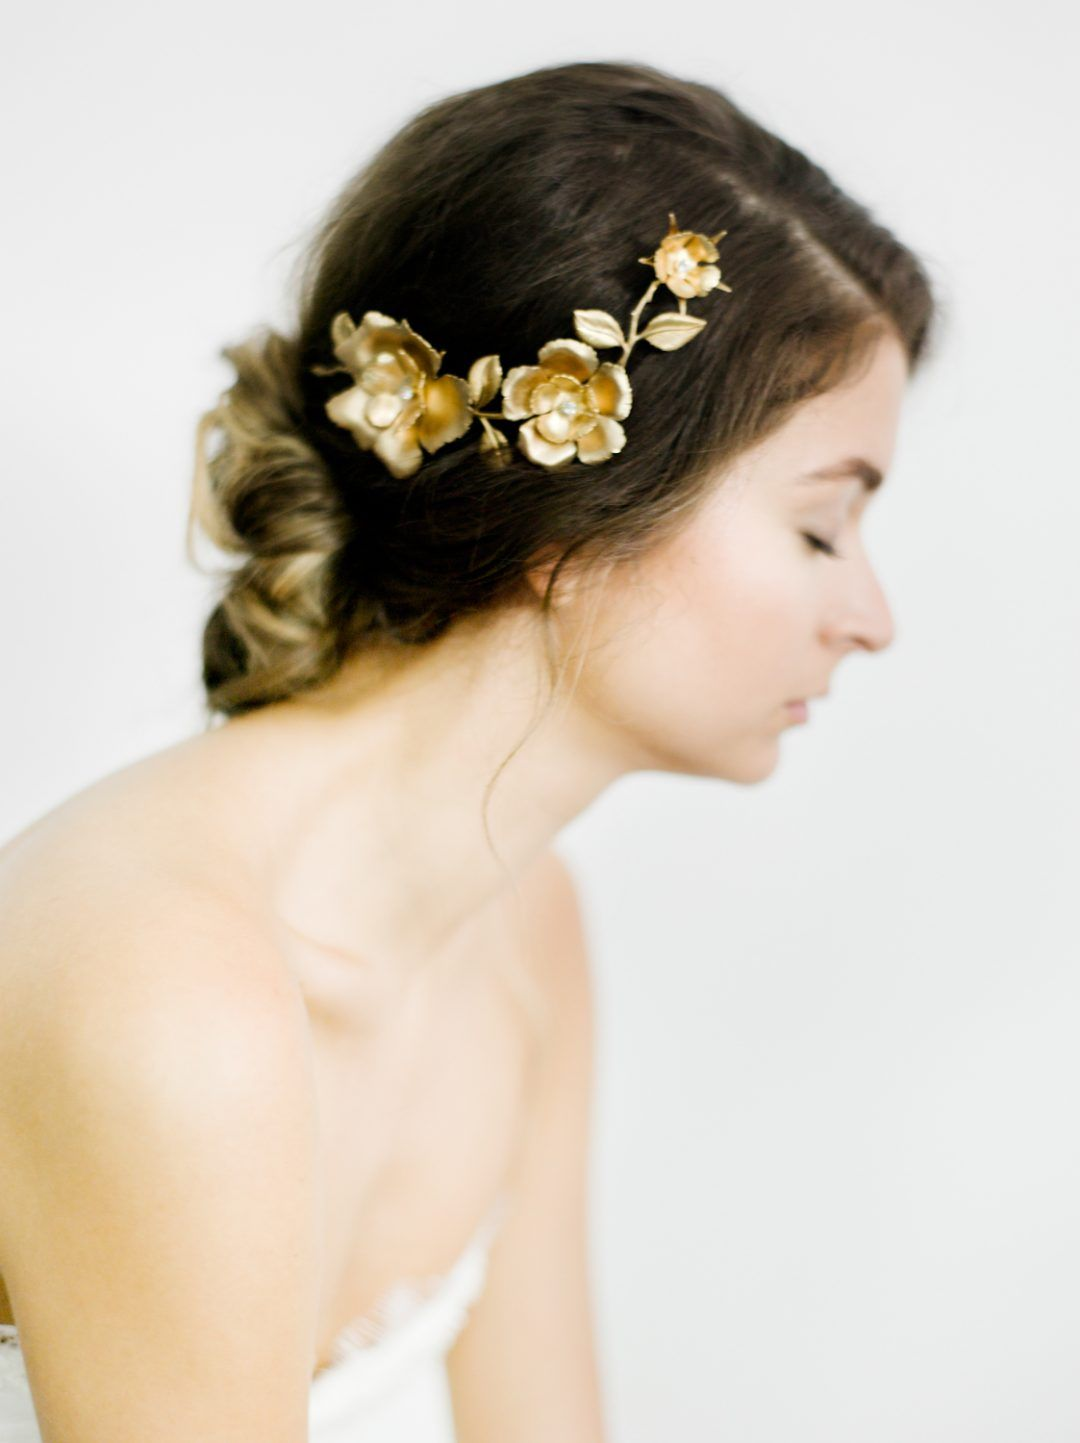 Amazing Floral hair accessories for holidays 2018 4